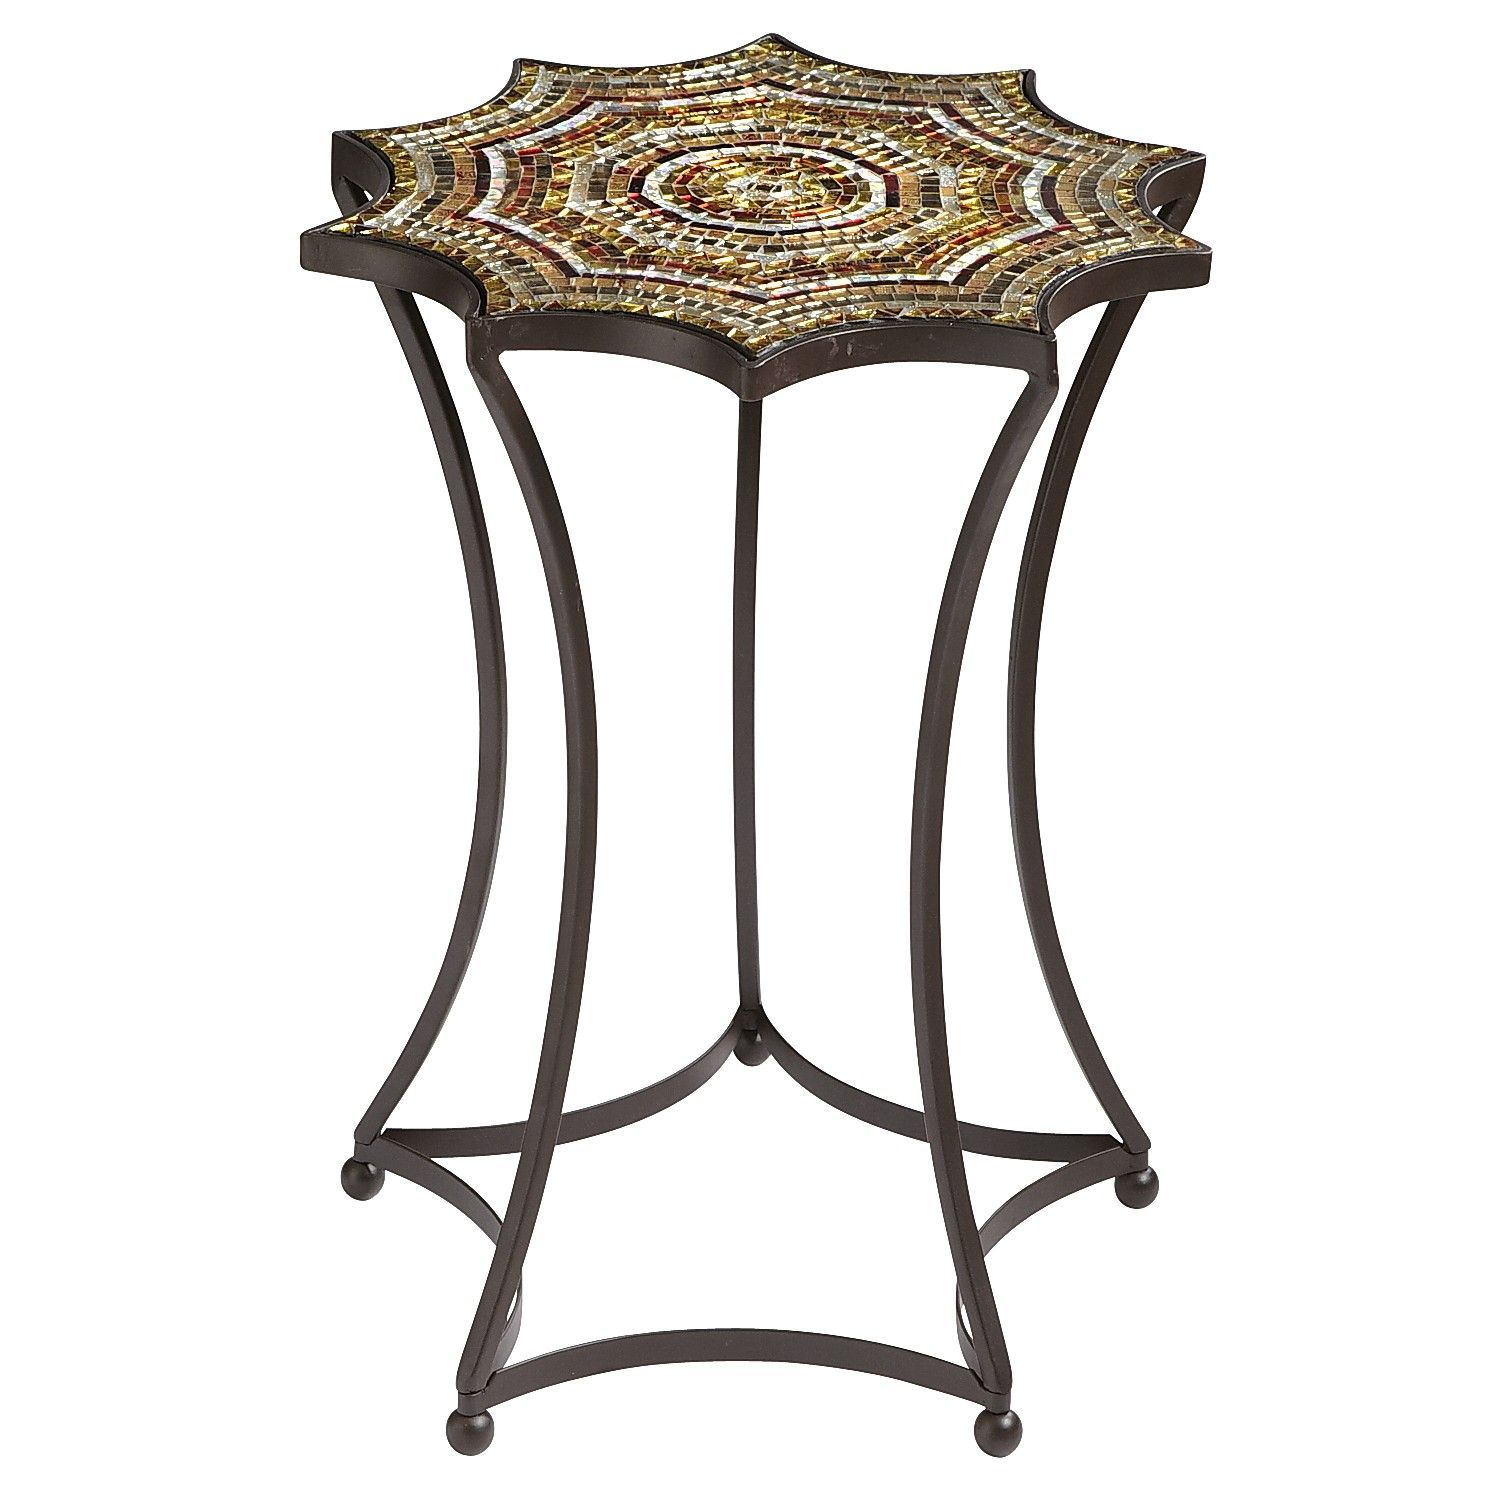 Starburst Mosaic Accent Table Pier 1 Imports Mosaic Accent